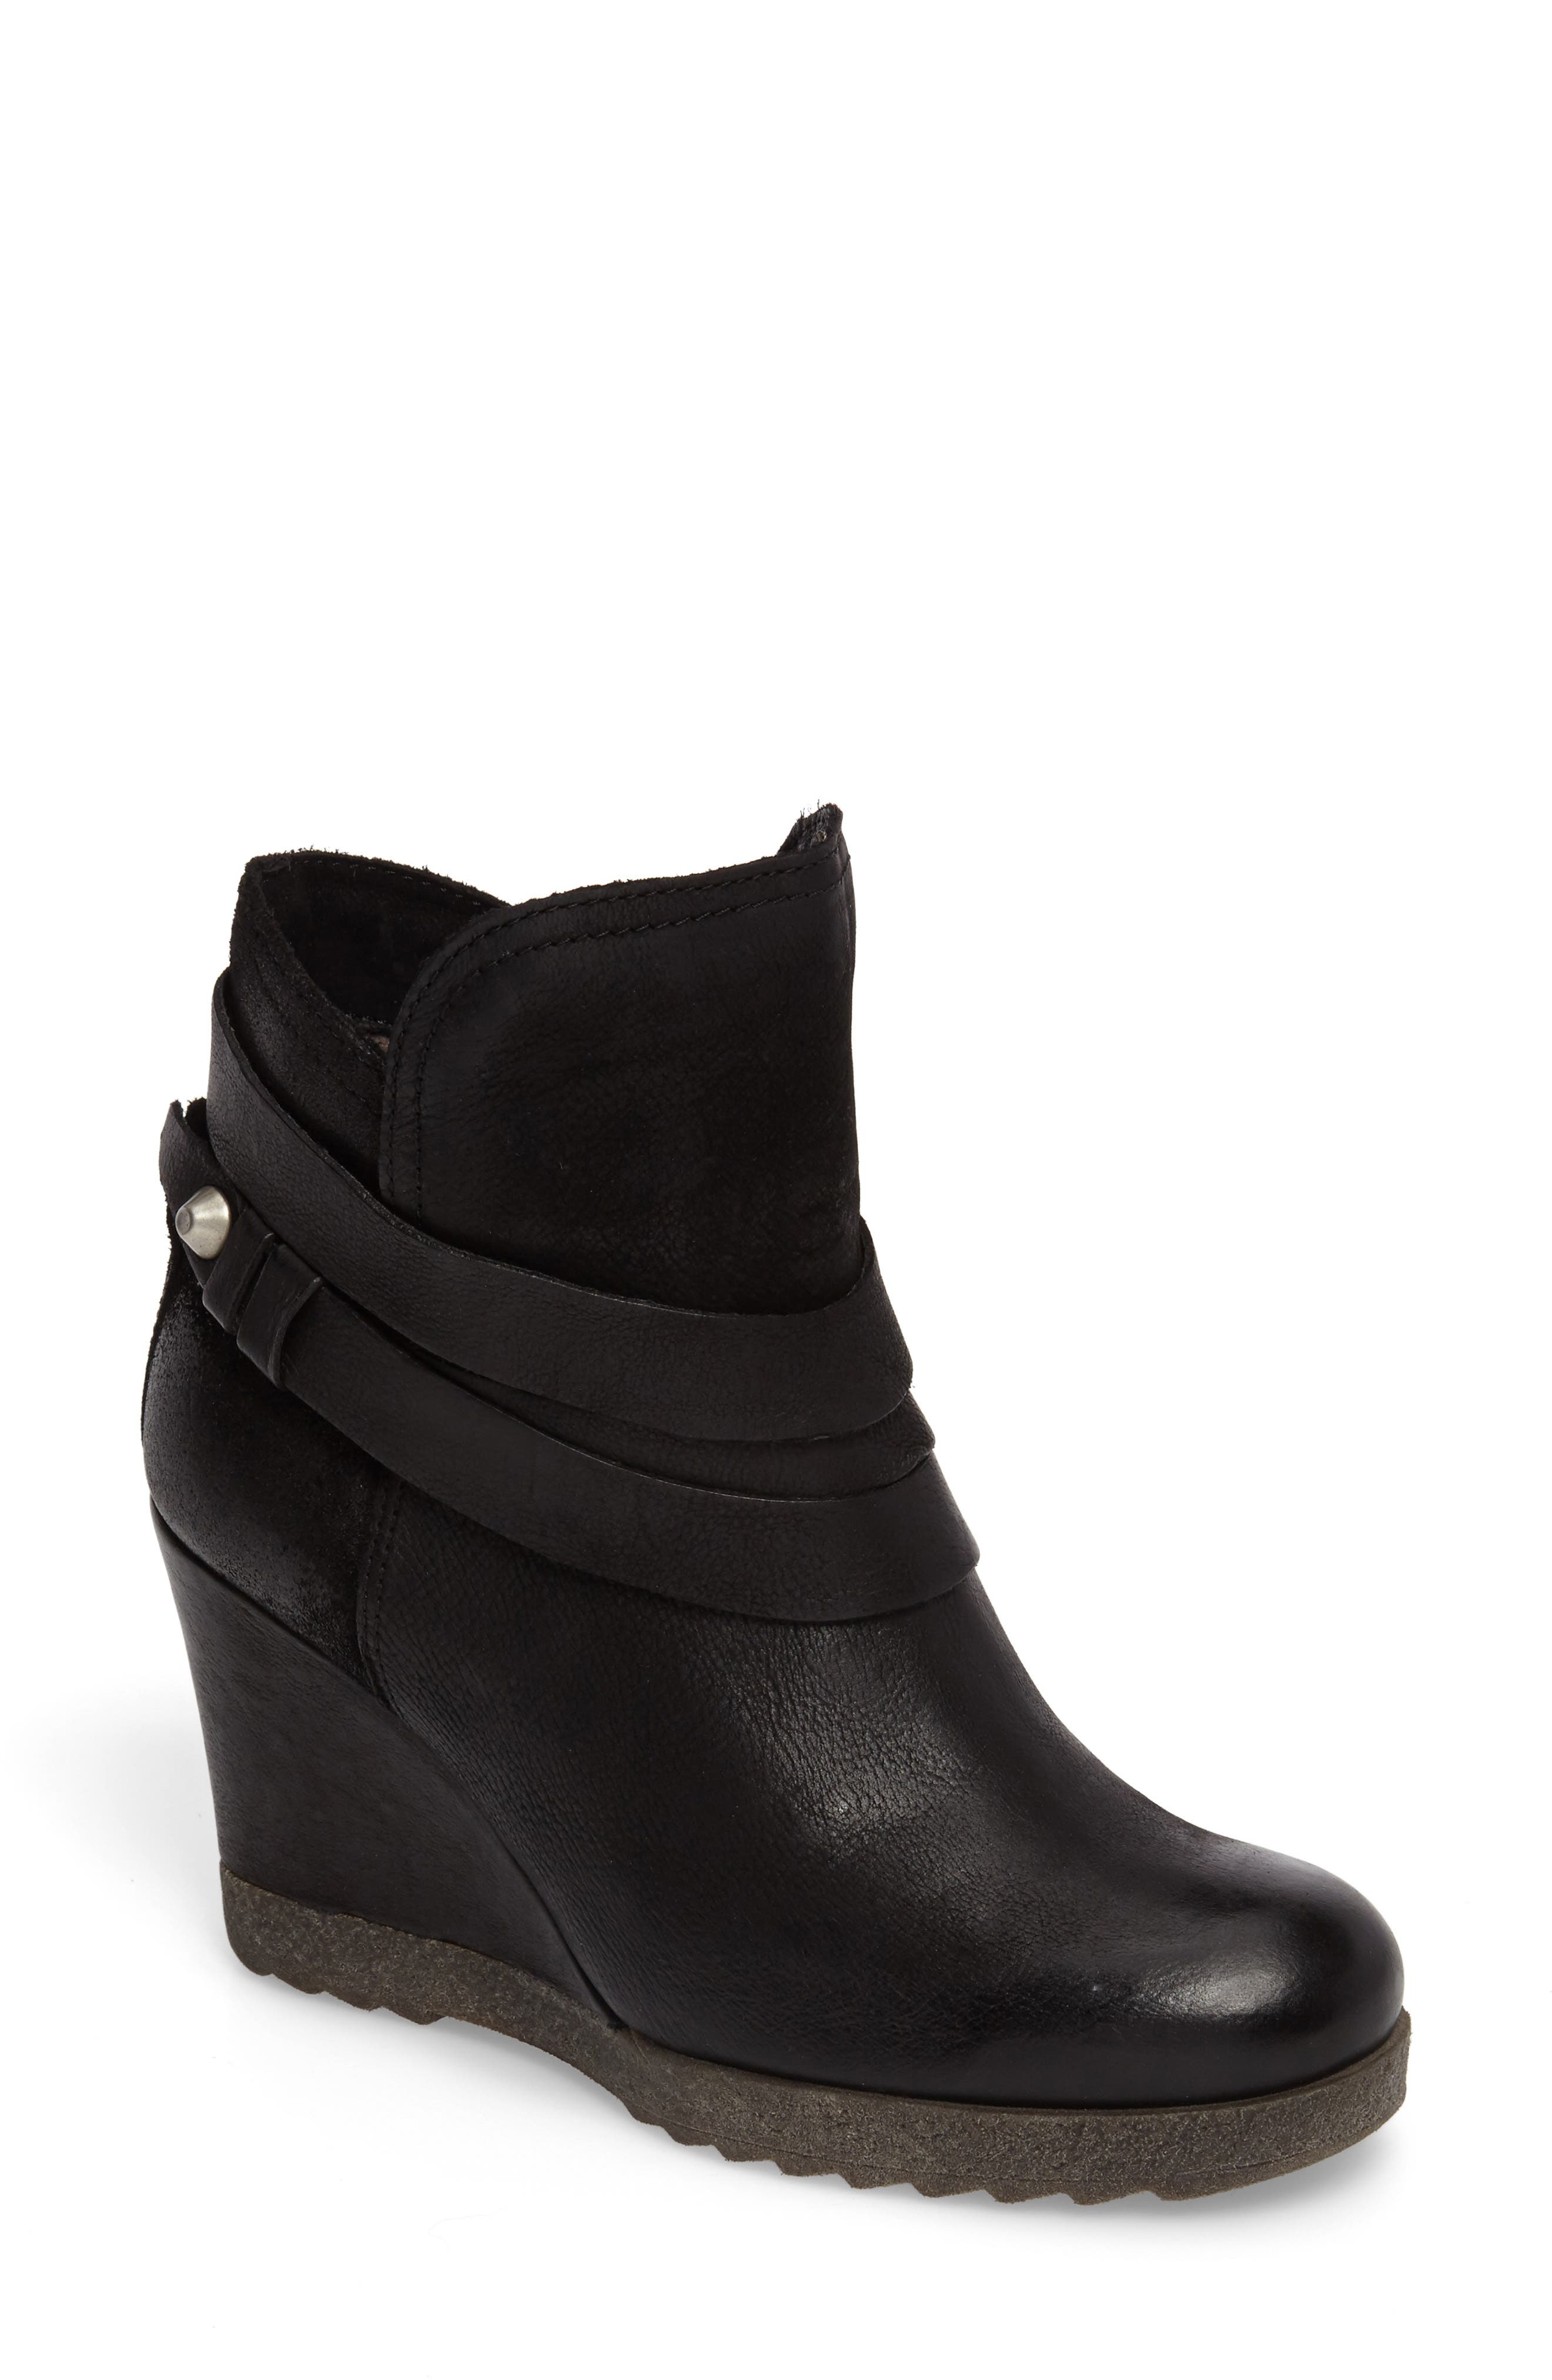 Narcissa Ankle Wrap Wedge Bootie,                         Main,                         color, 001